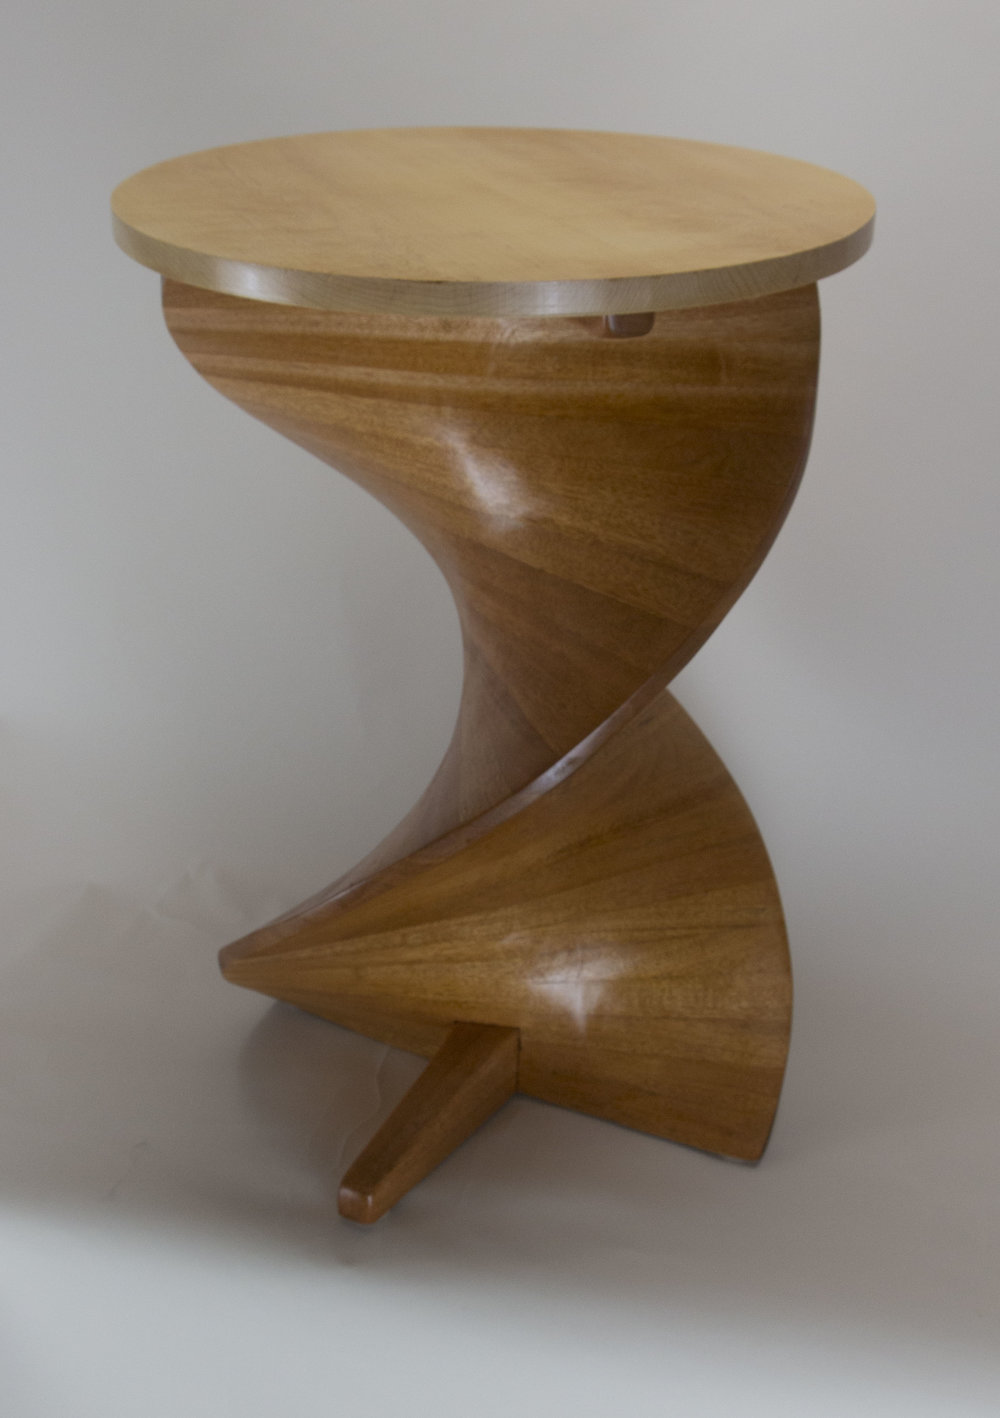 JIM OLESON - Helical Cocktail TableJim Oleson designs and makes furniture and sculptural objects that emphasize curved forms, using a wide variety of techniques to achieve these forms. His background in mathematics, physics, and medicine informs the entire design process from mechanical considerations to inclusion of shapes inspired by nature.